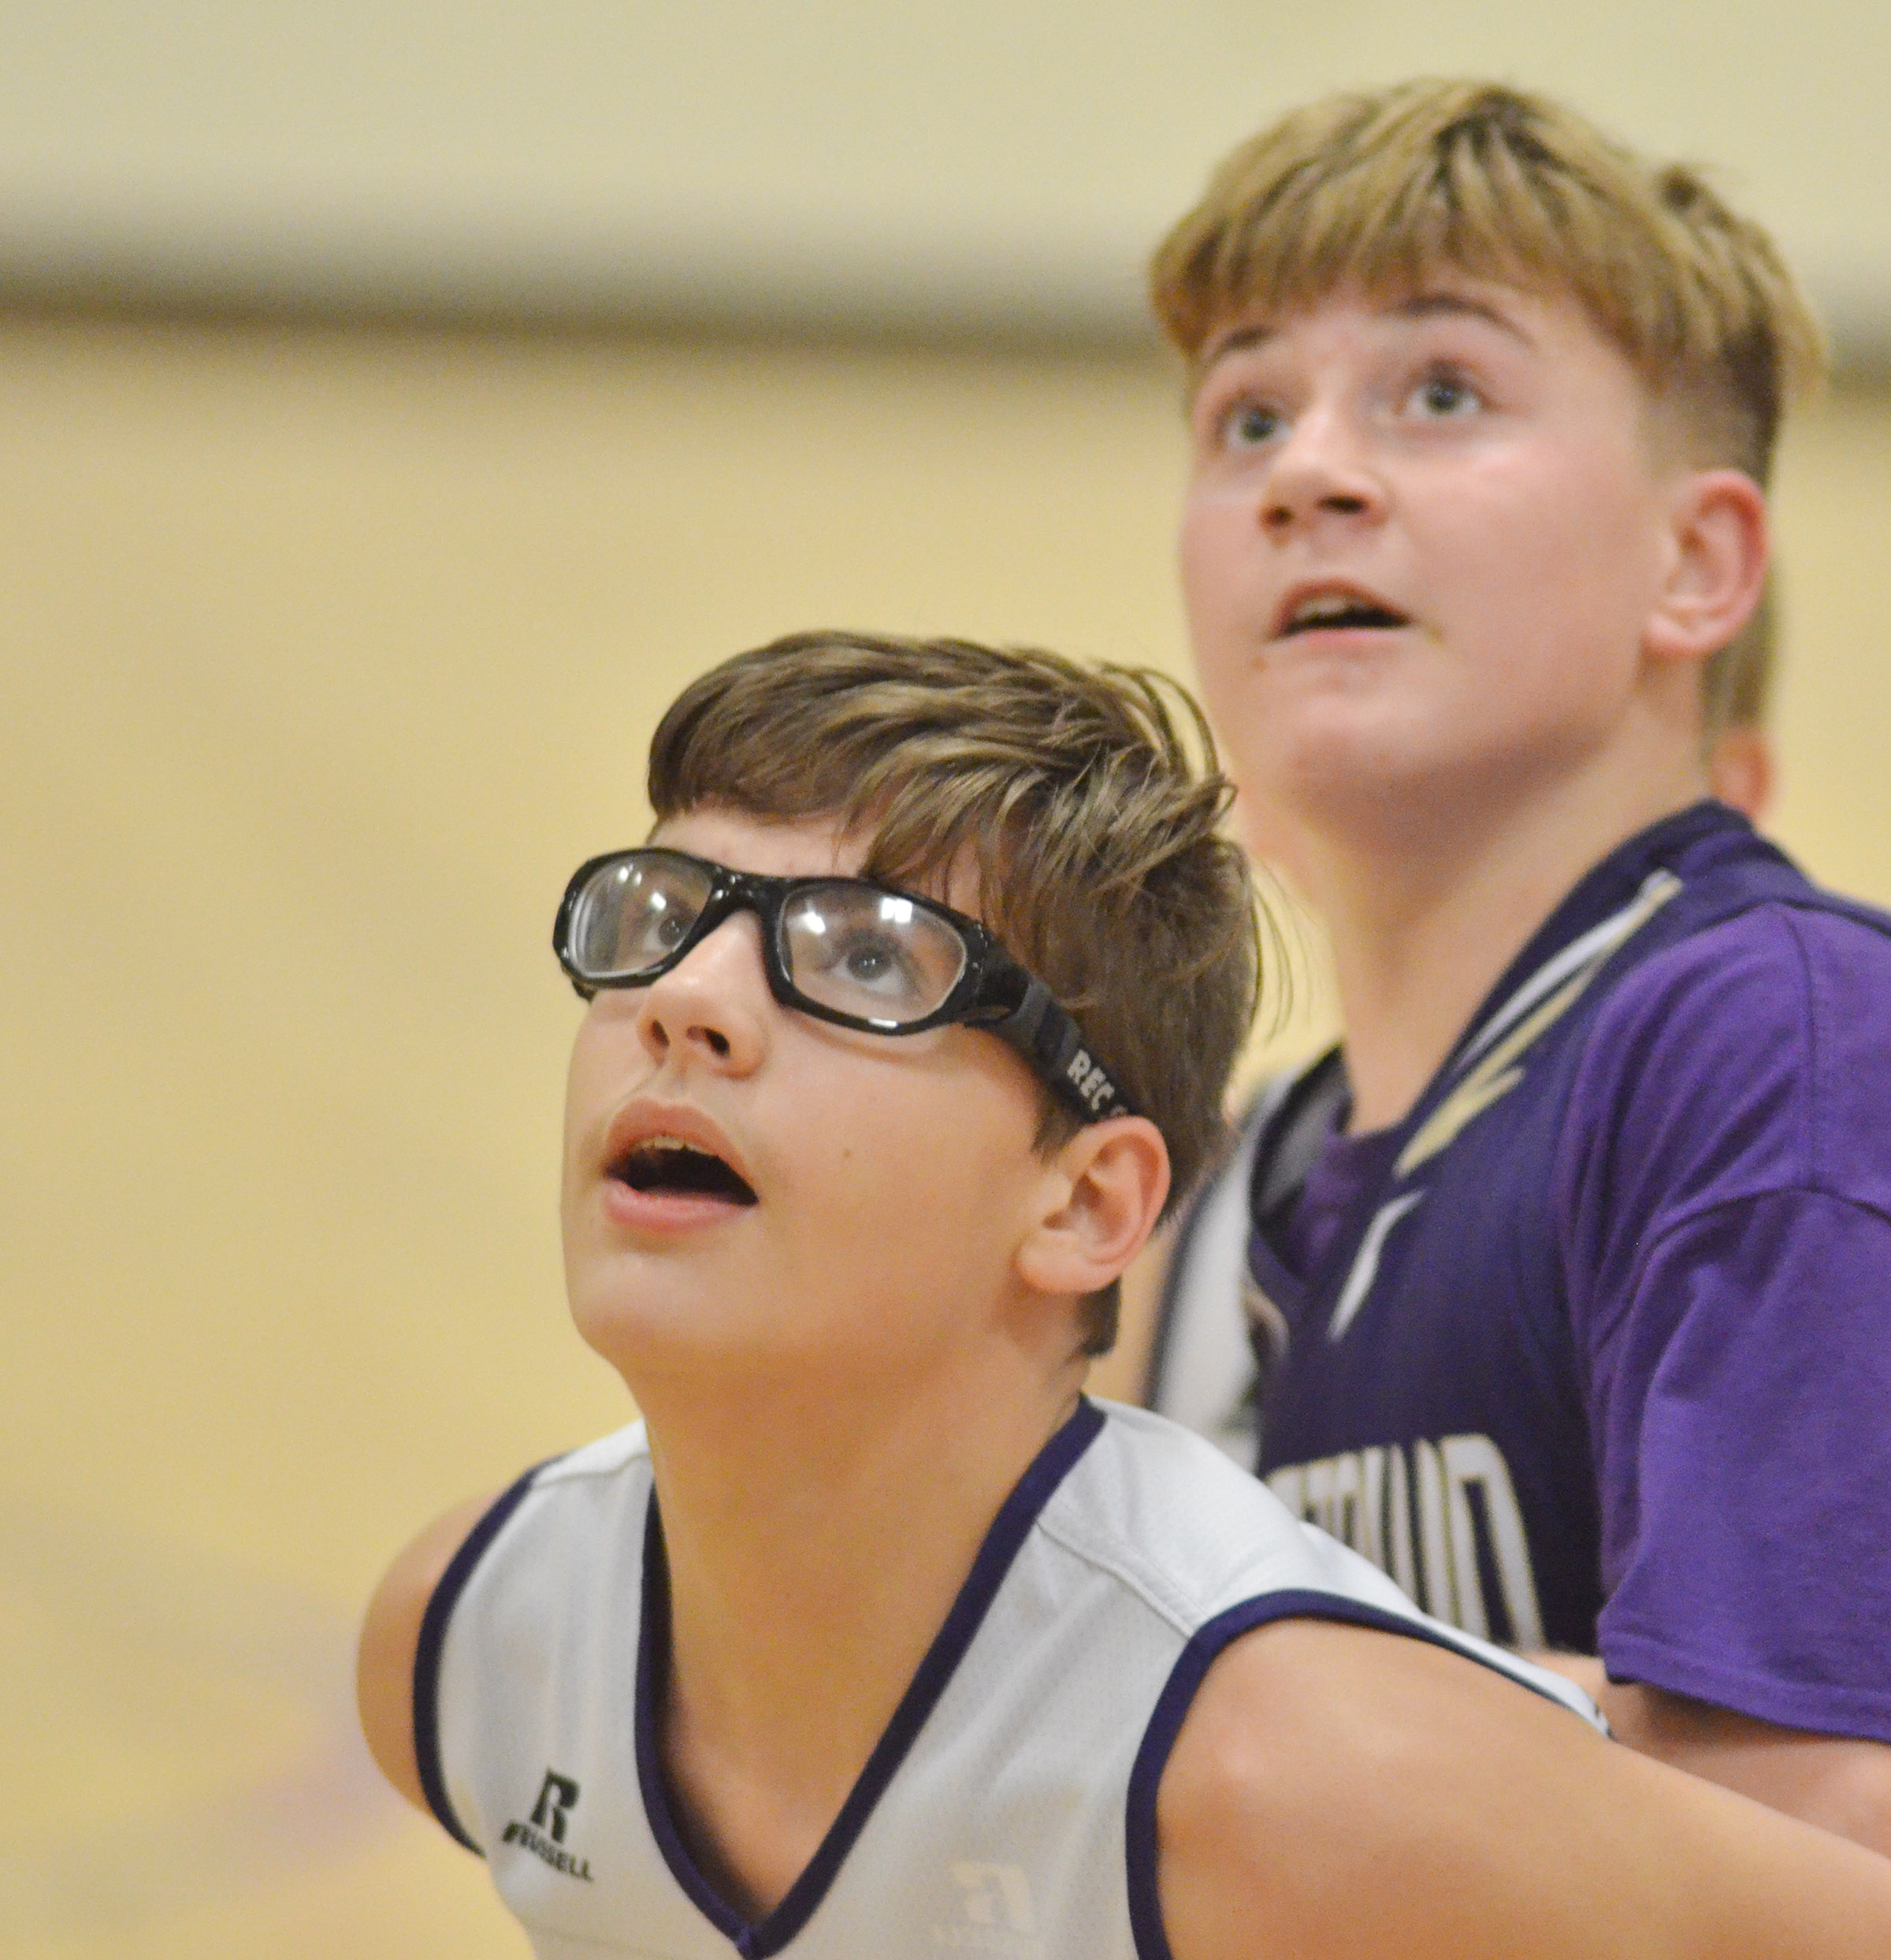 Campbellsville Elementary School fifth-grader Dalton Morris looks for a rebound.